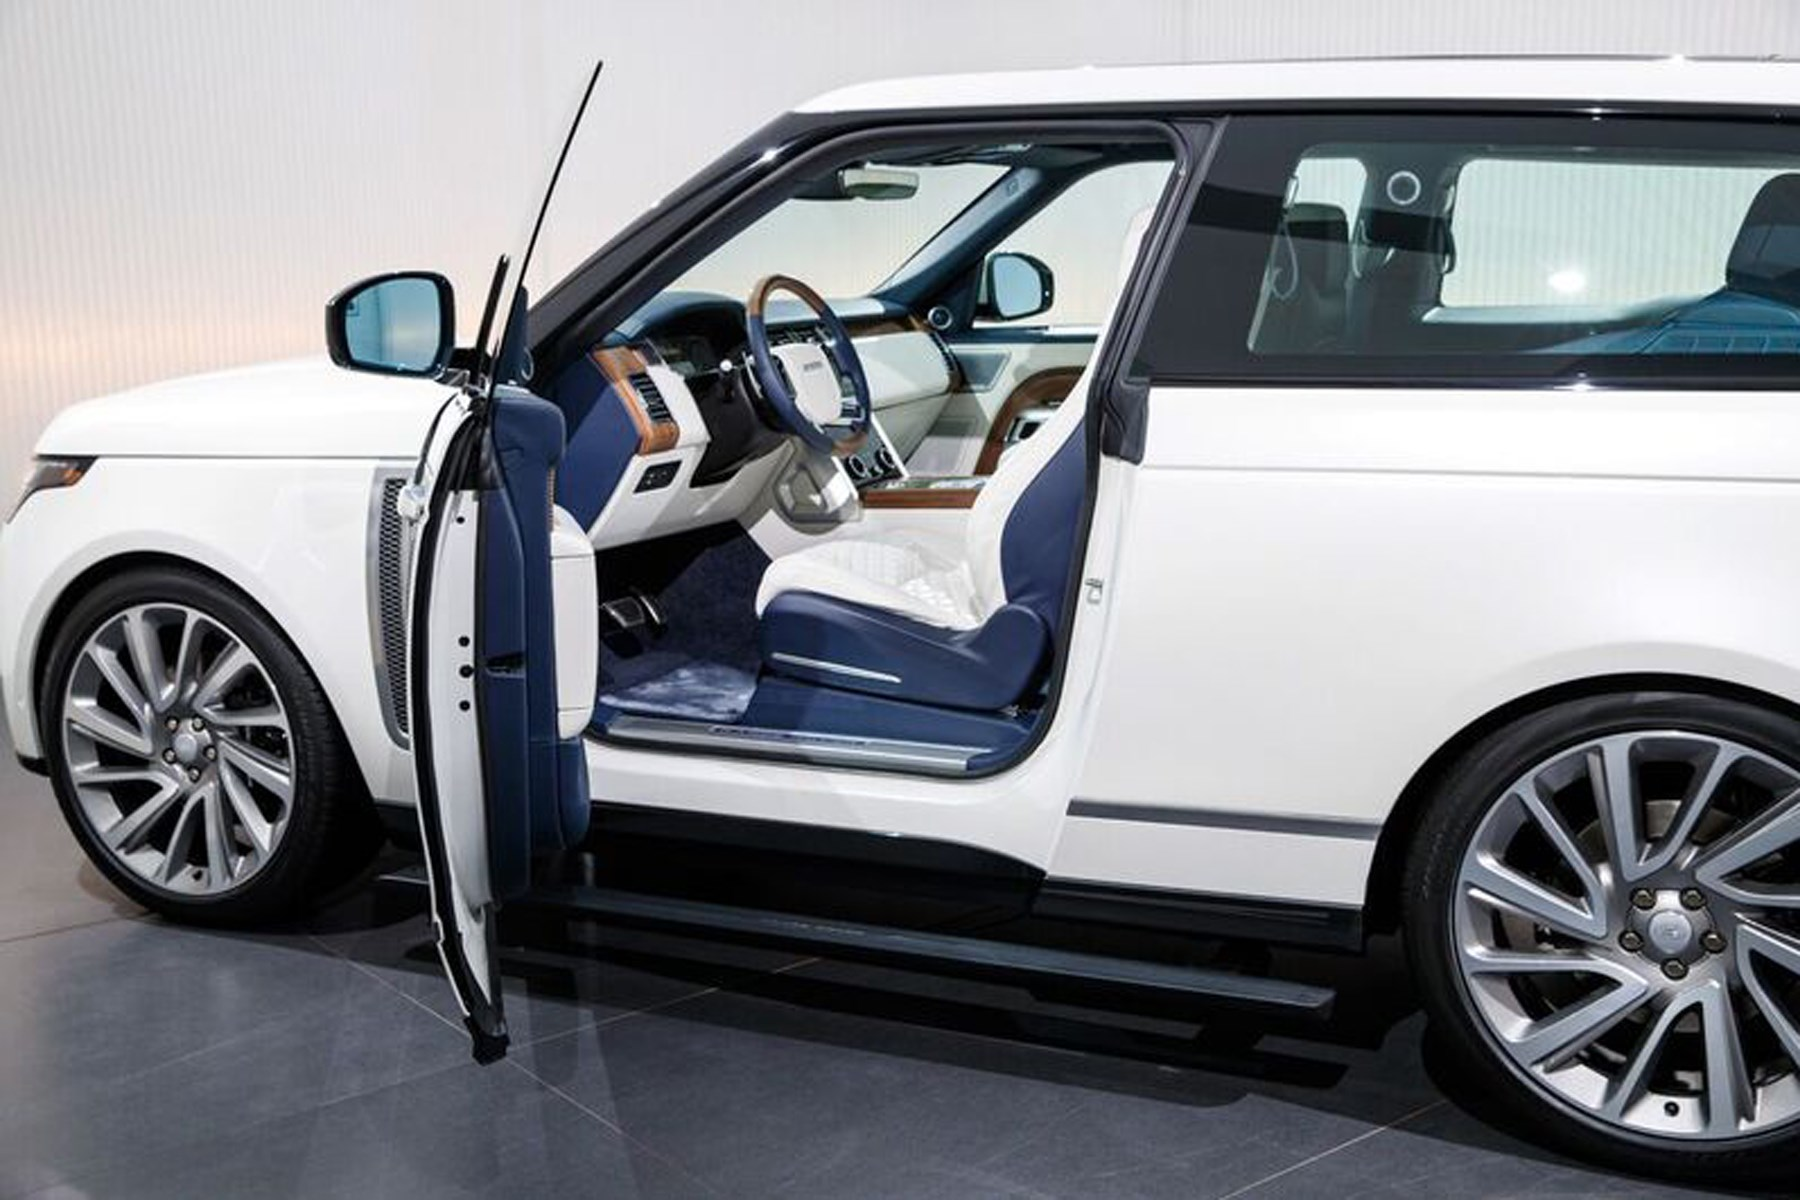 of landrover june rangerover toyota offers check newcars images mileage range land photo rover price